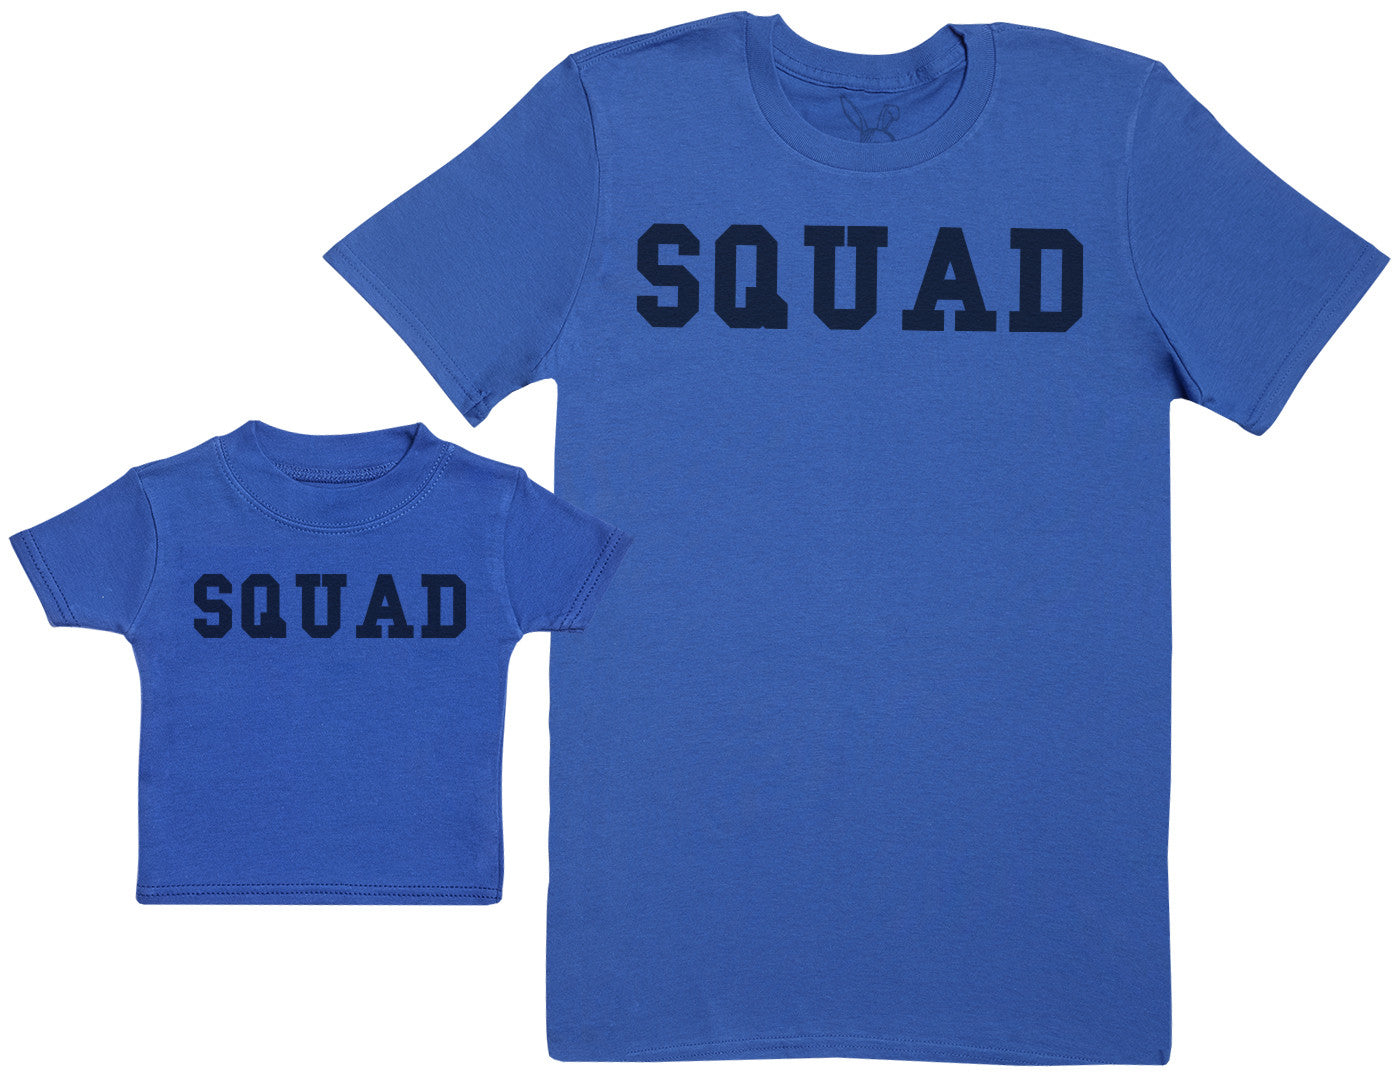 SQUAD - Baby Gift Set with Baby T-Shirt & Father's T-Shirt